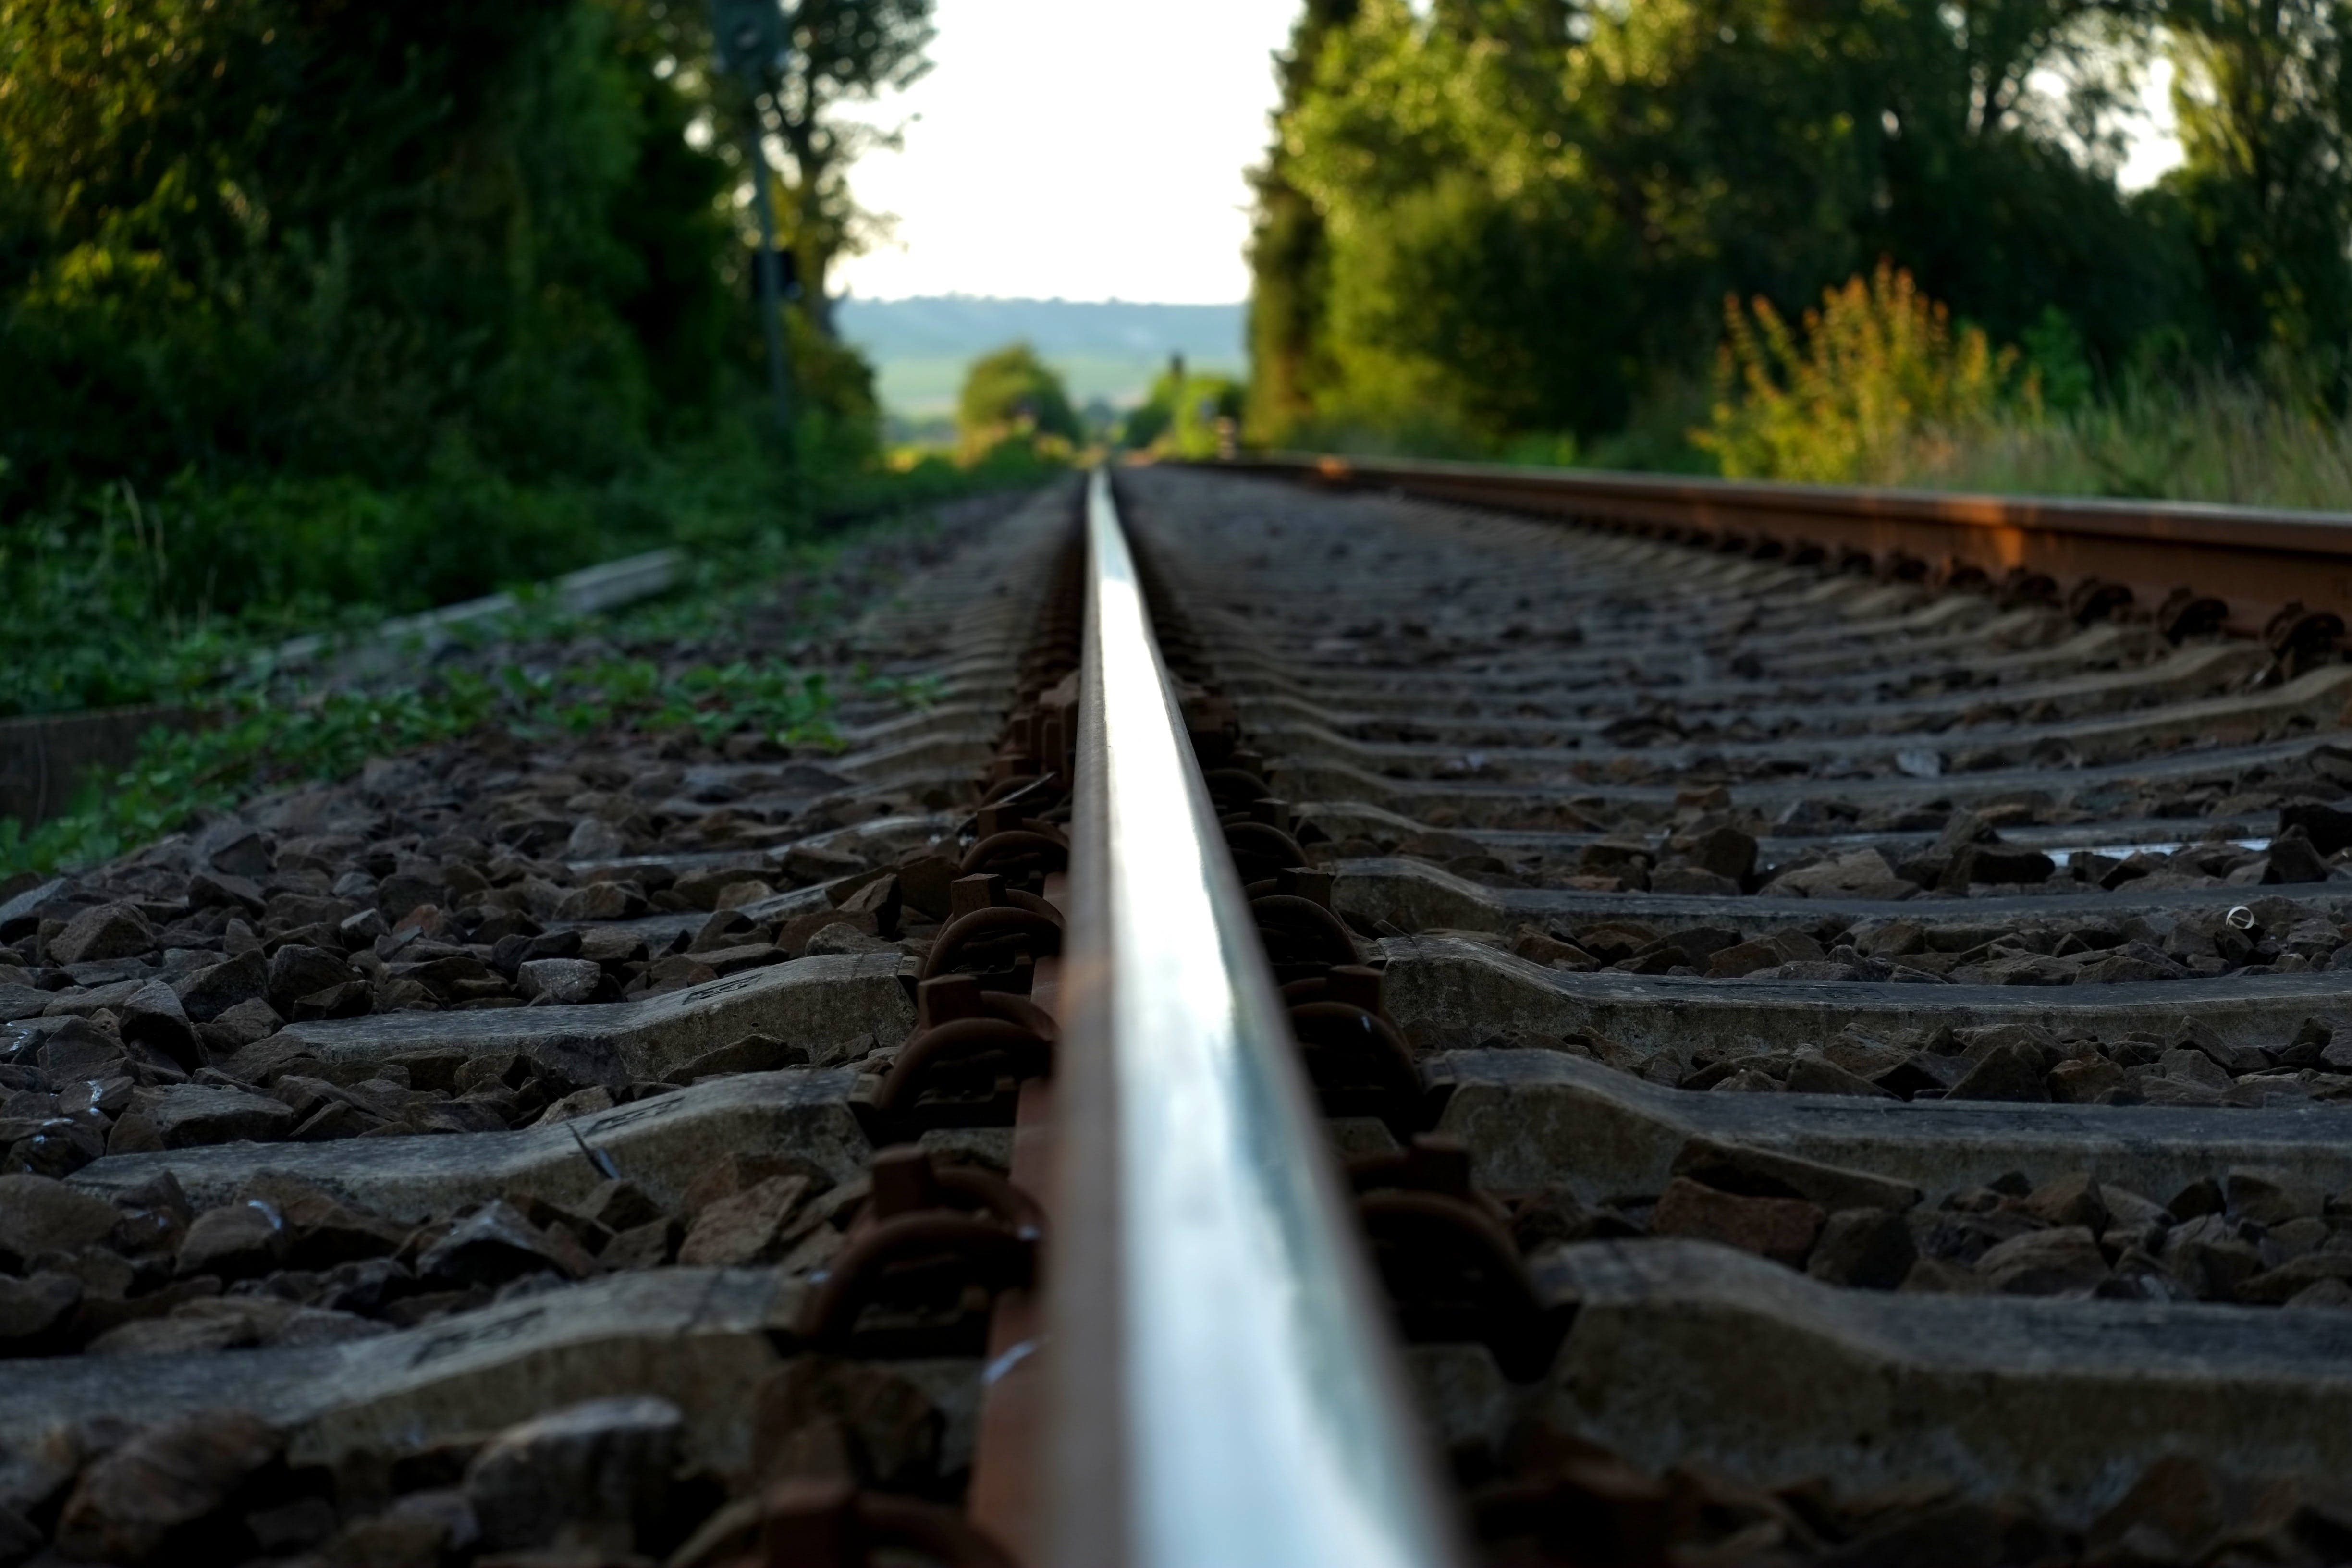 Brown Train Rail on Close Up Photo during Daytime